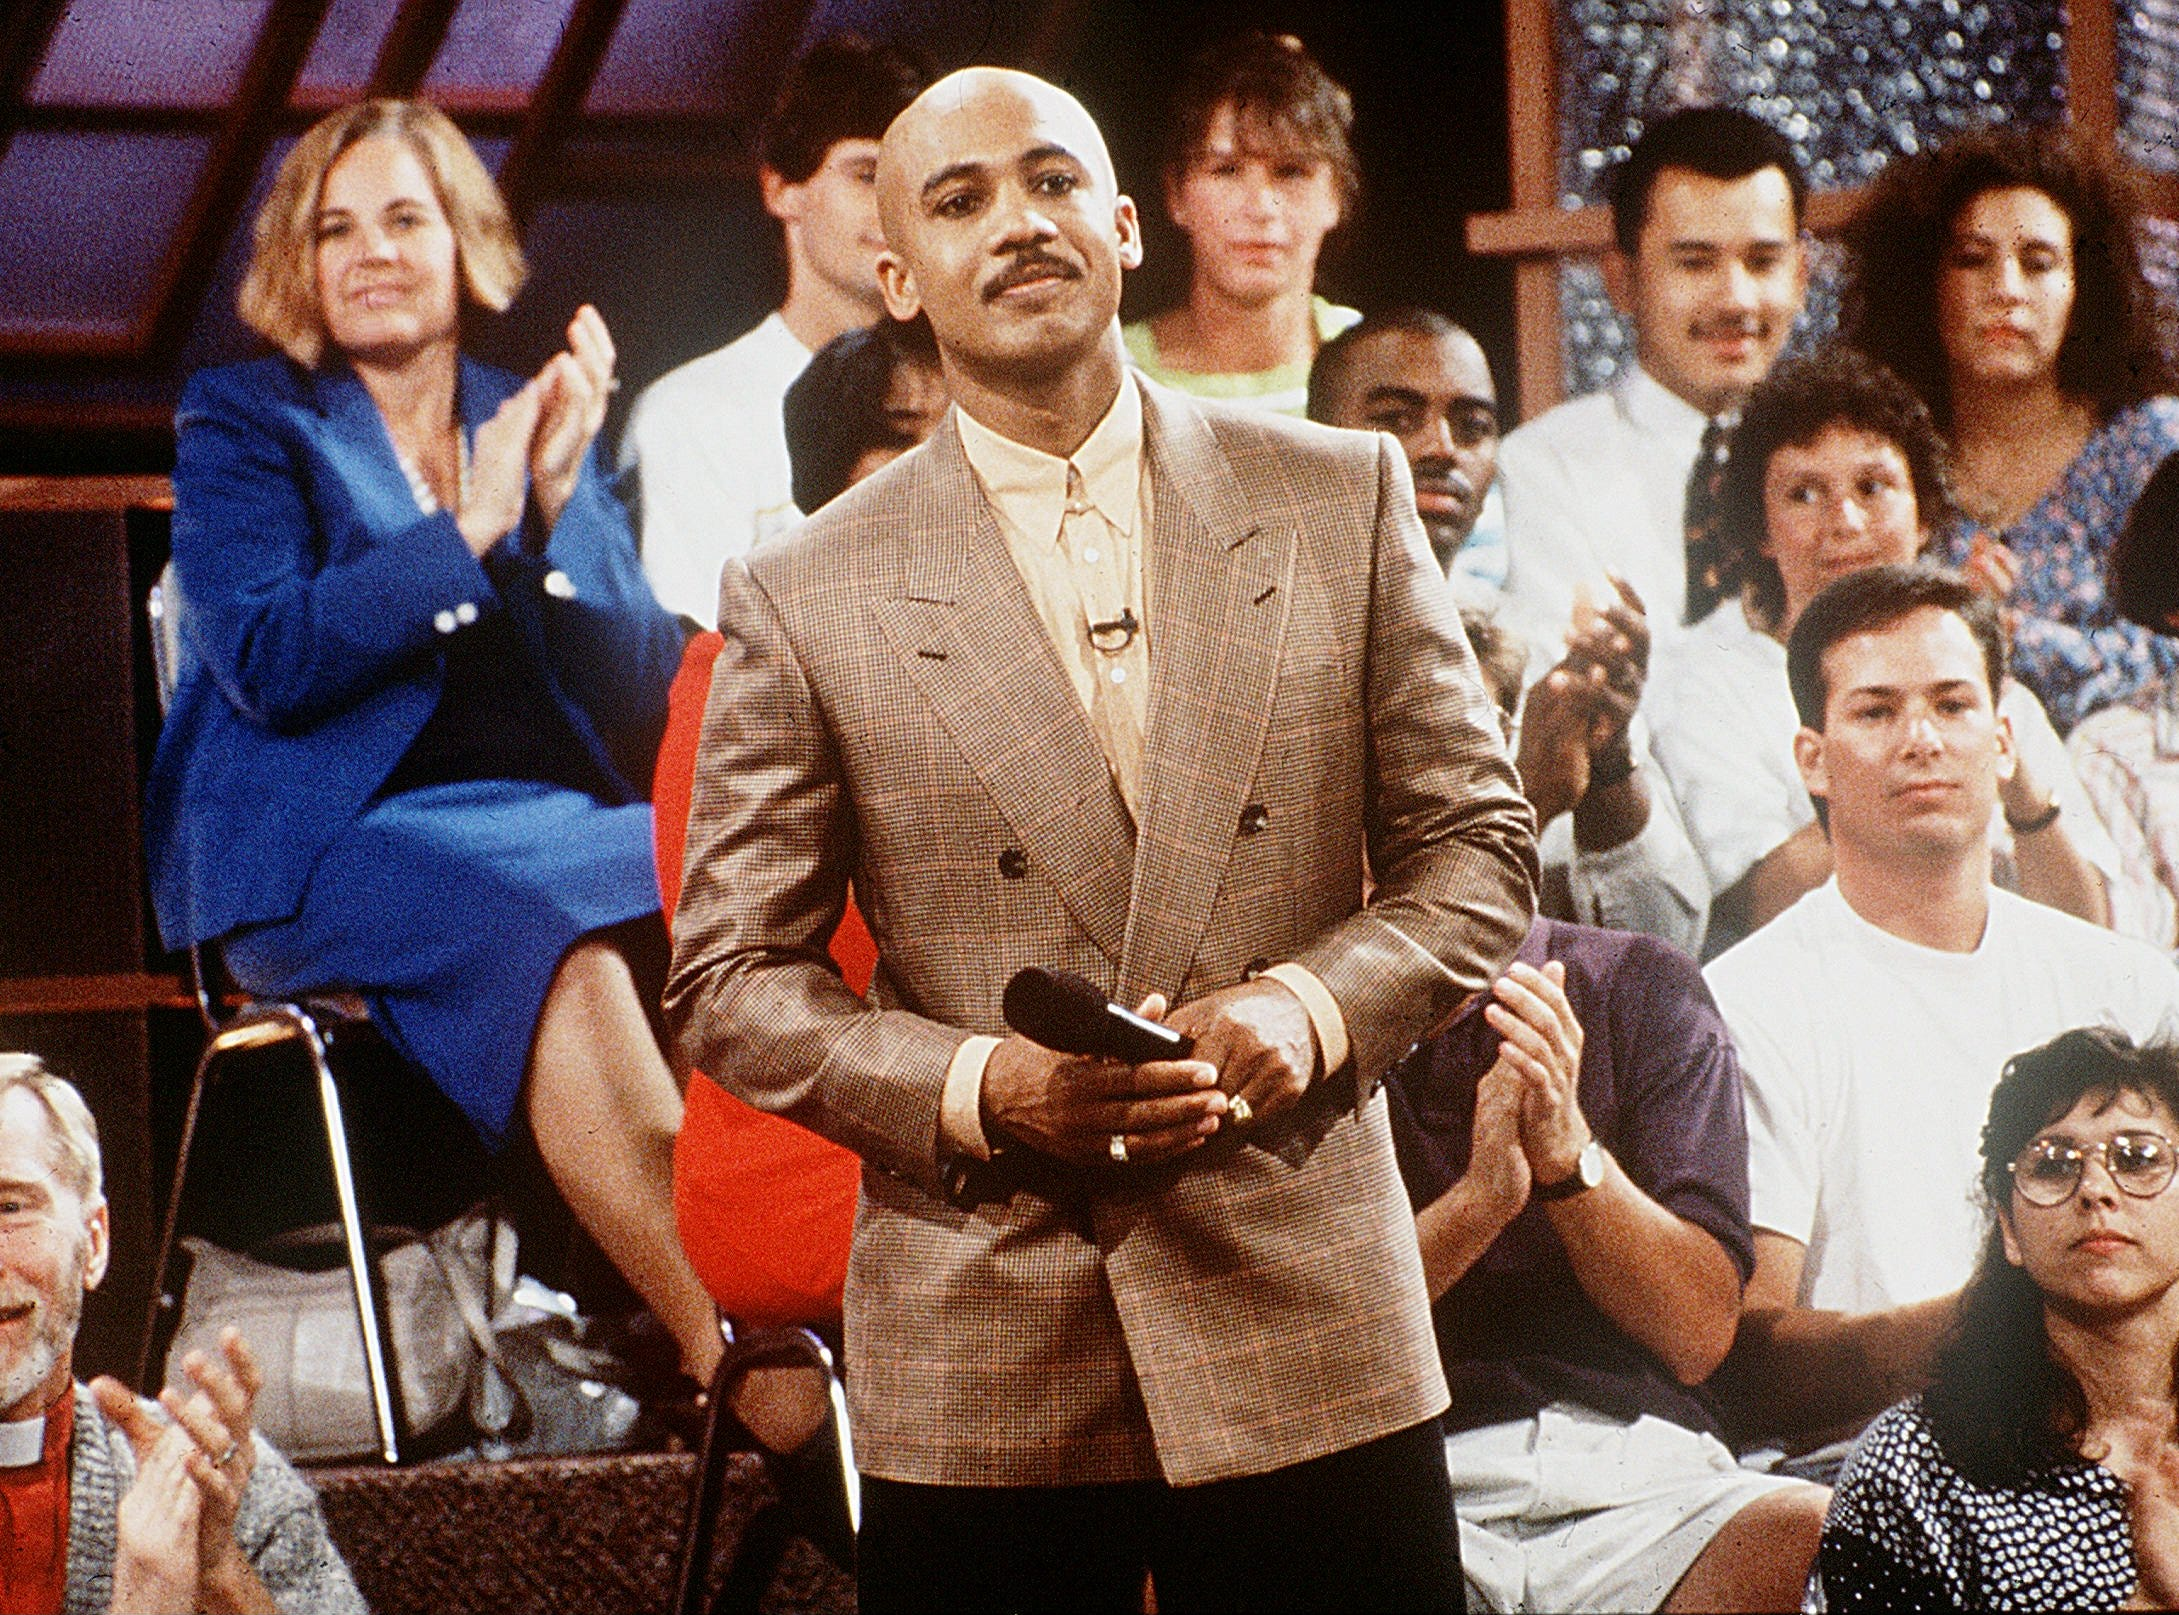 Undated-Talk show host Montel Williams on the set of his show.